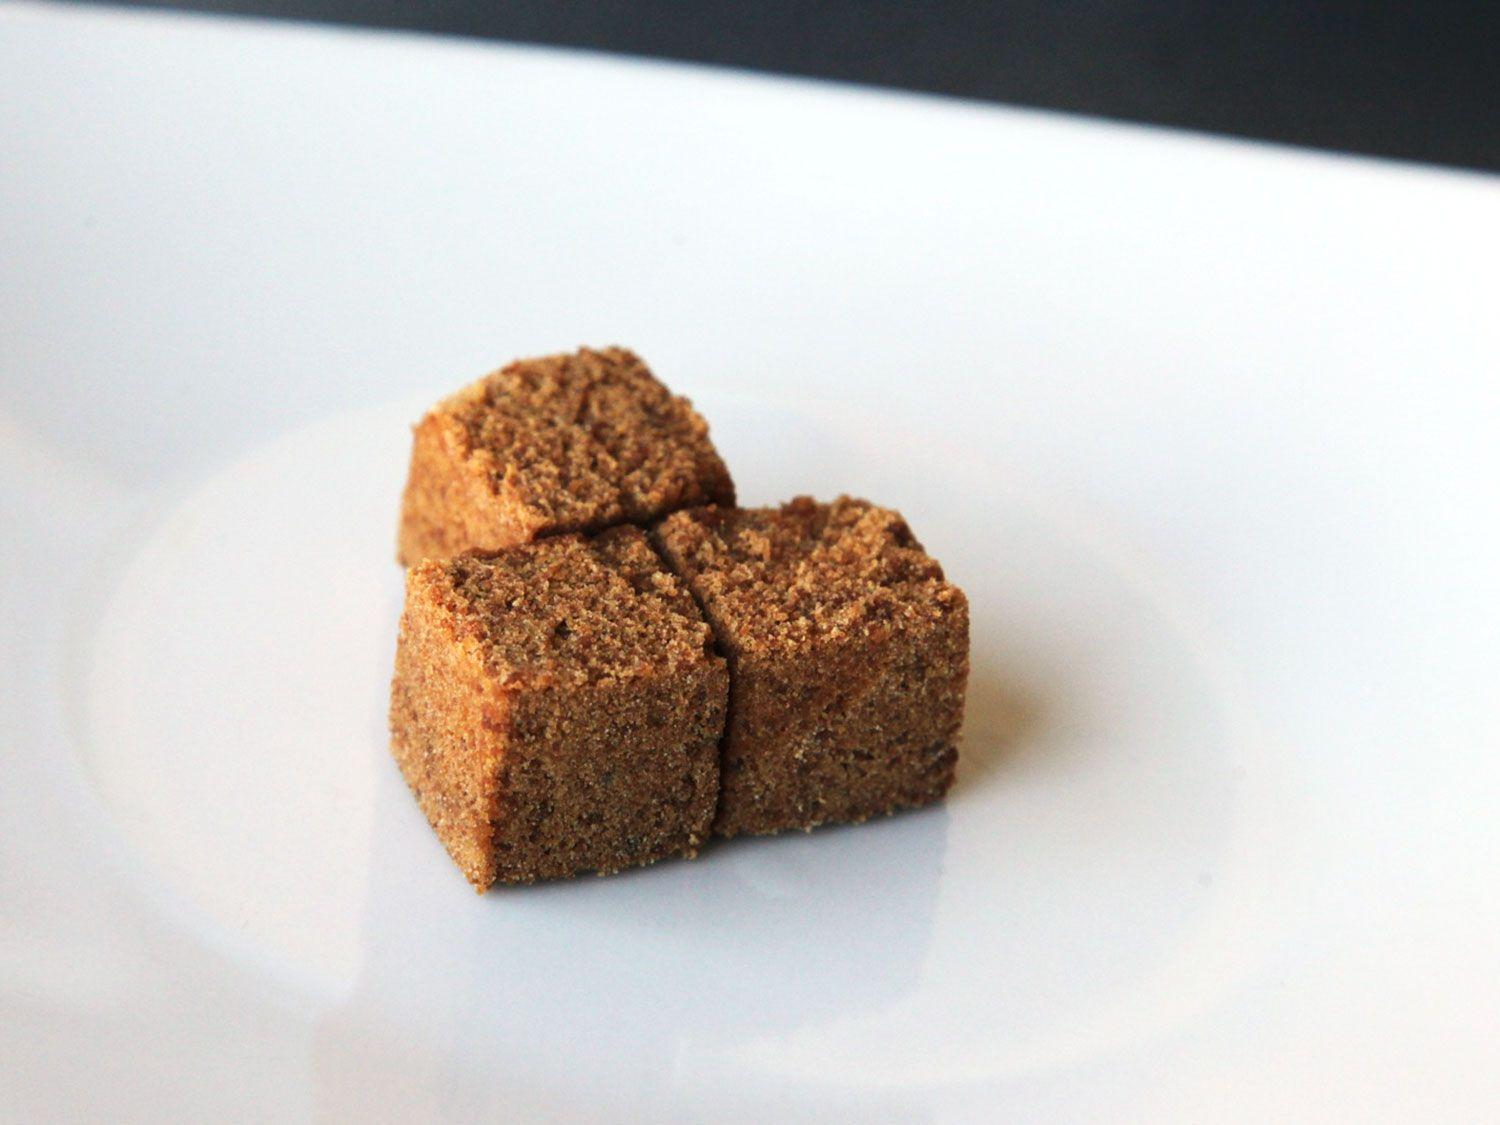 Panela (evaporated cane juice) cubes on a white plate.